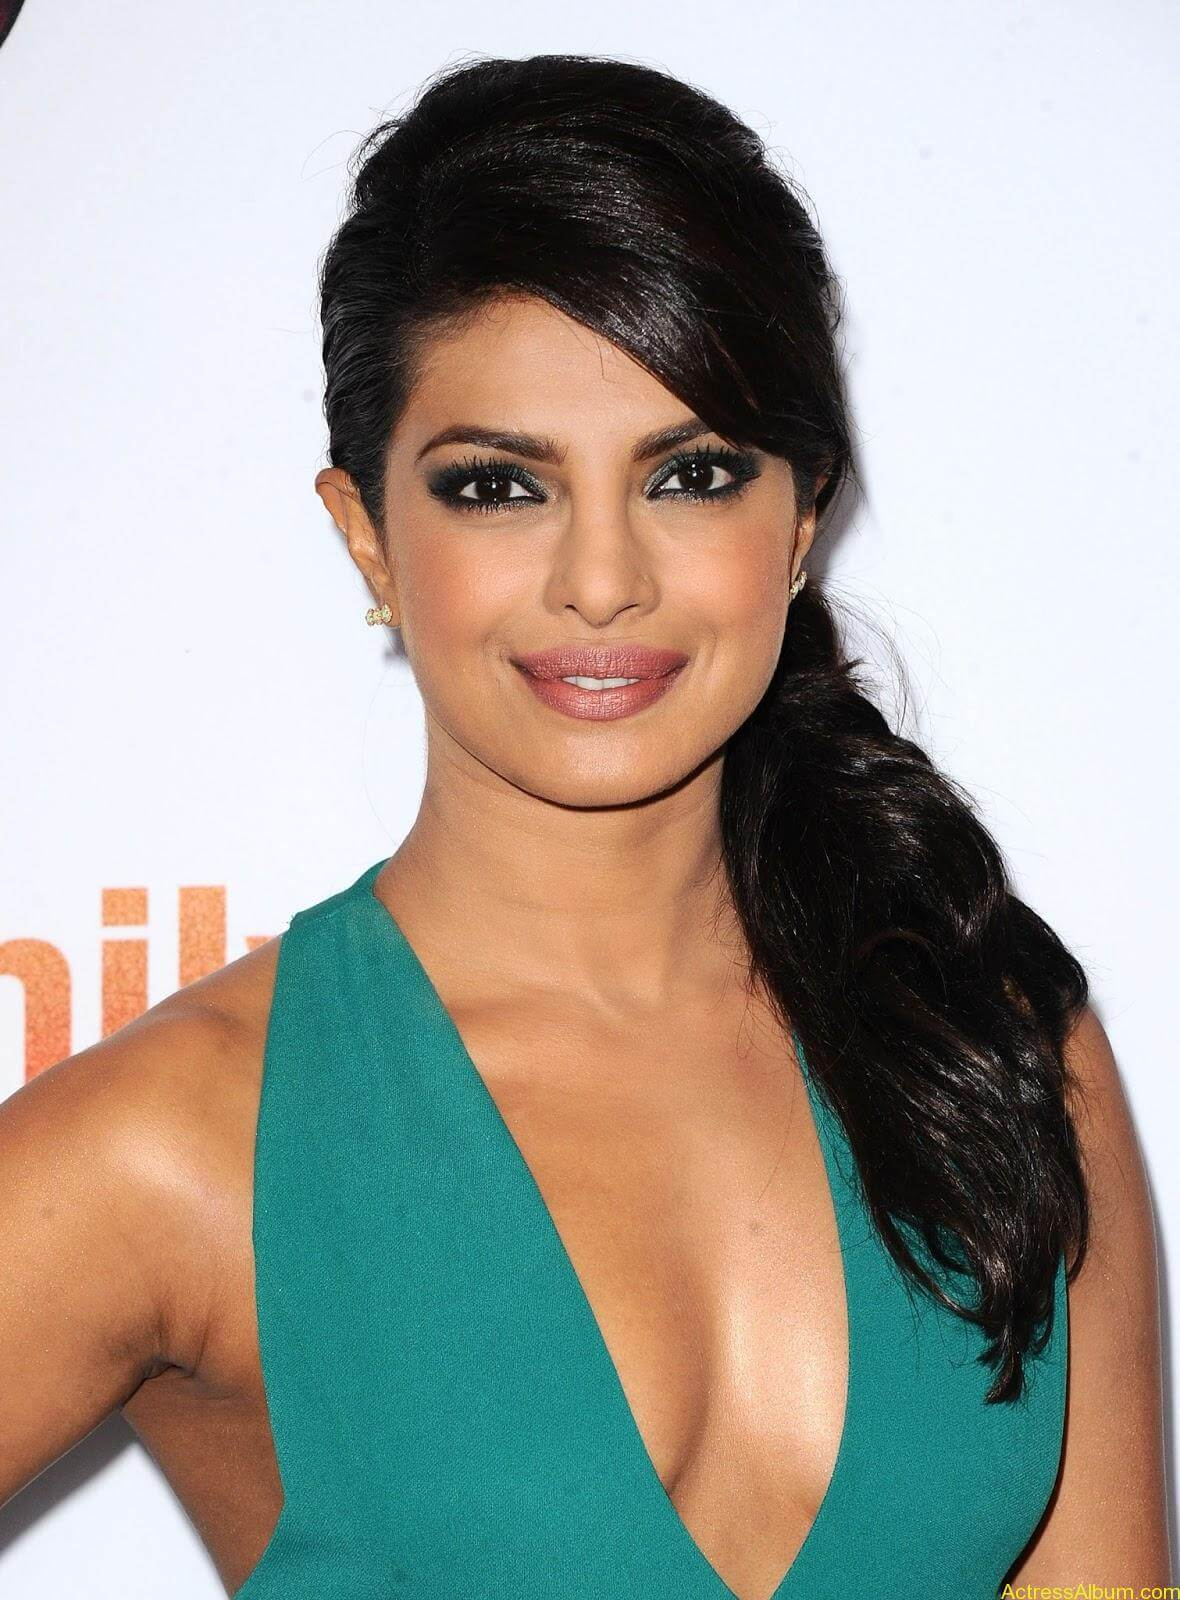 Priyanka-Chopra-Latest-Hot-Cleavage-Photos-Stills-6